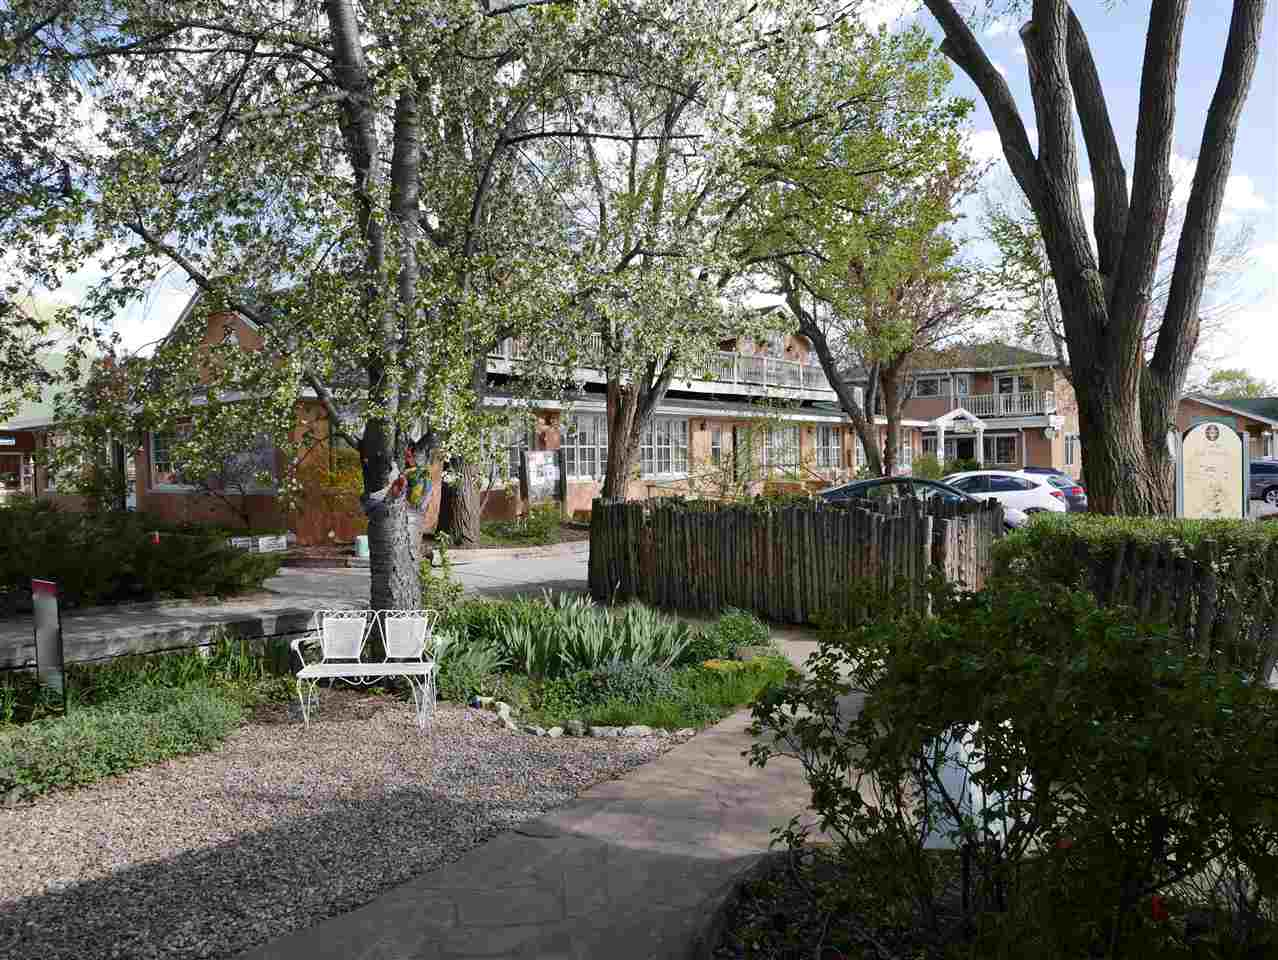 130 132  134 Bent Street, Taos, NM 87571